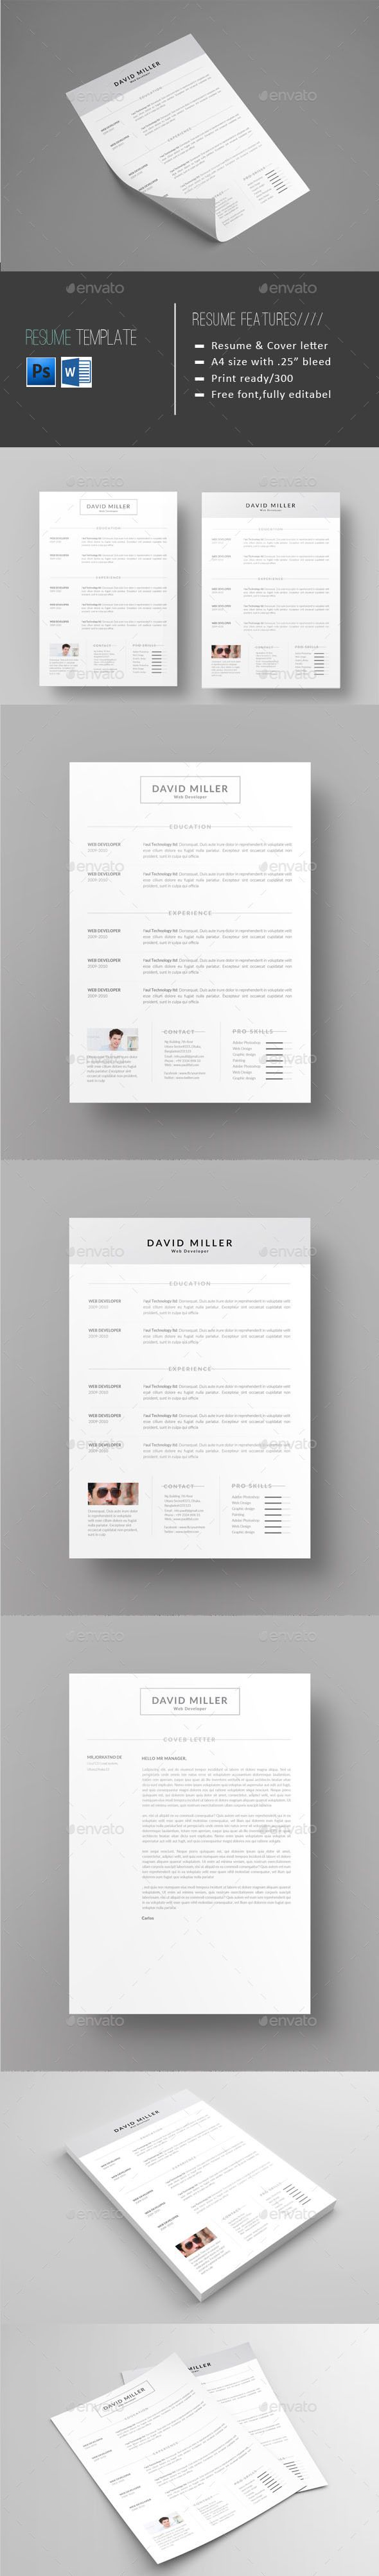 Functional Resume Template Microsoft%0A Resume Design Template  Resumes Stationery Template PSD  Download here   https